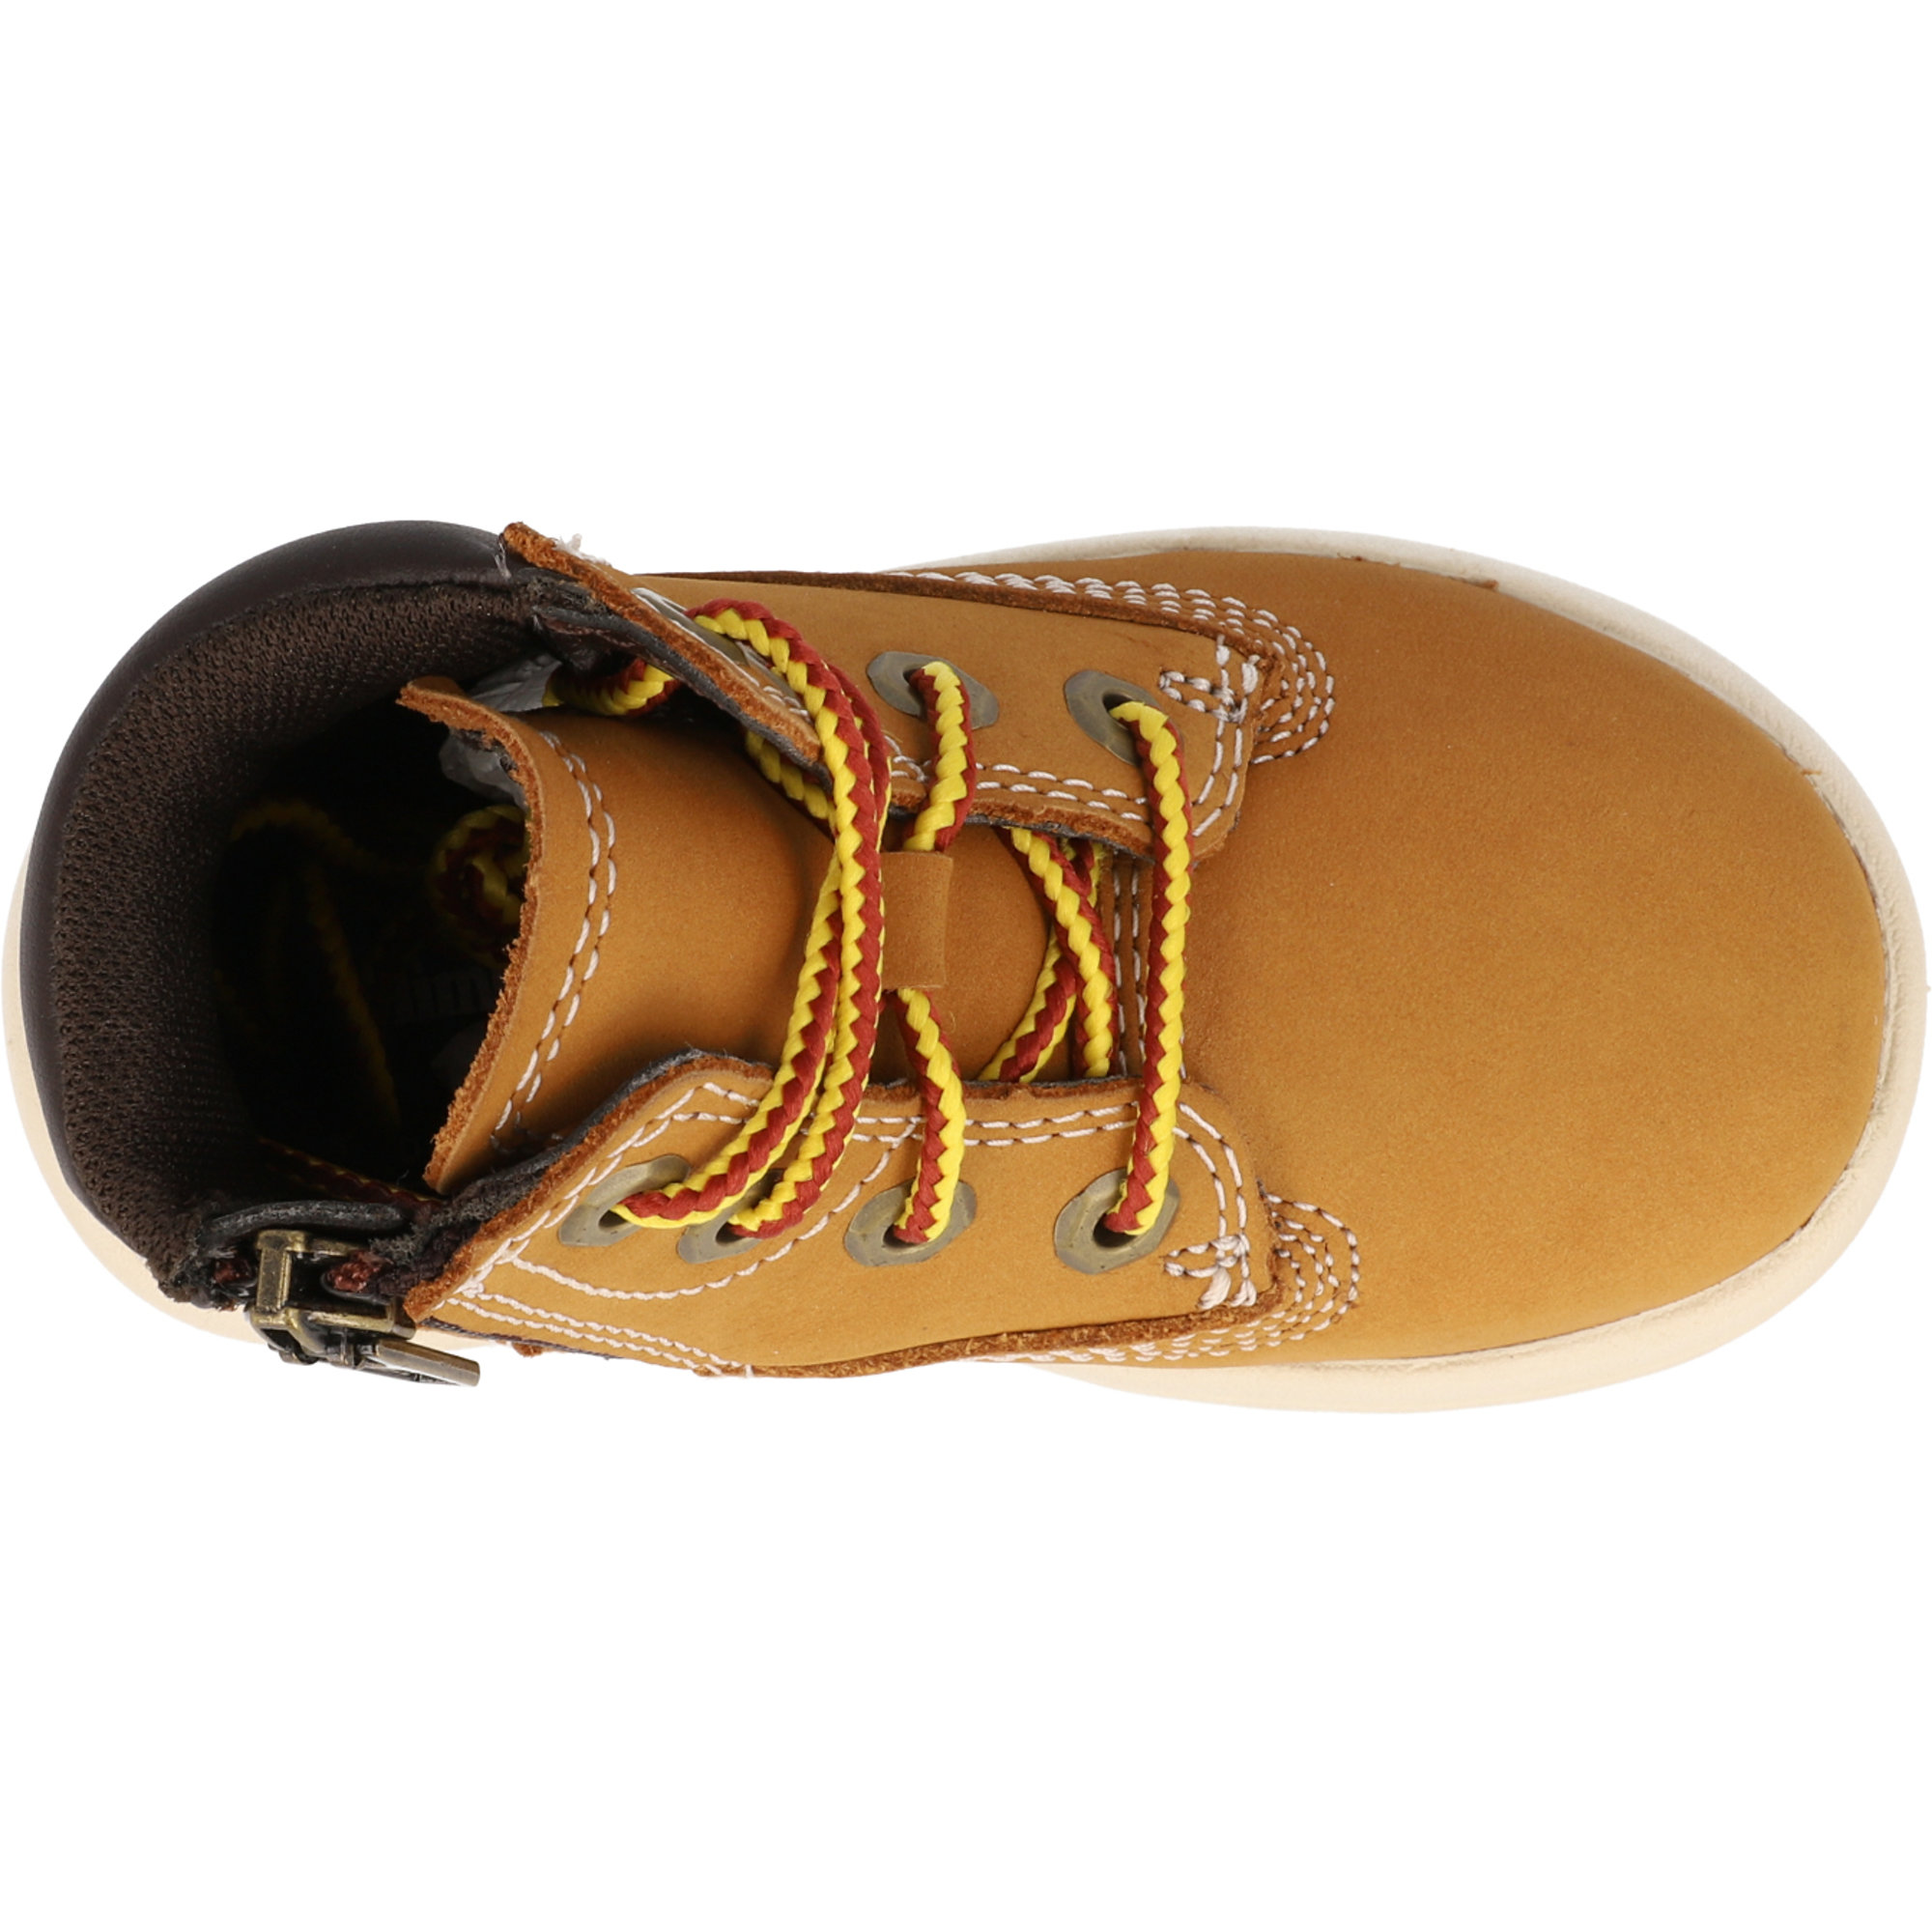 Timberland Toddle Tracks 6 Inch Wheat Nubuck Infant